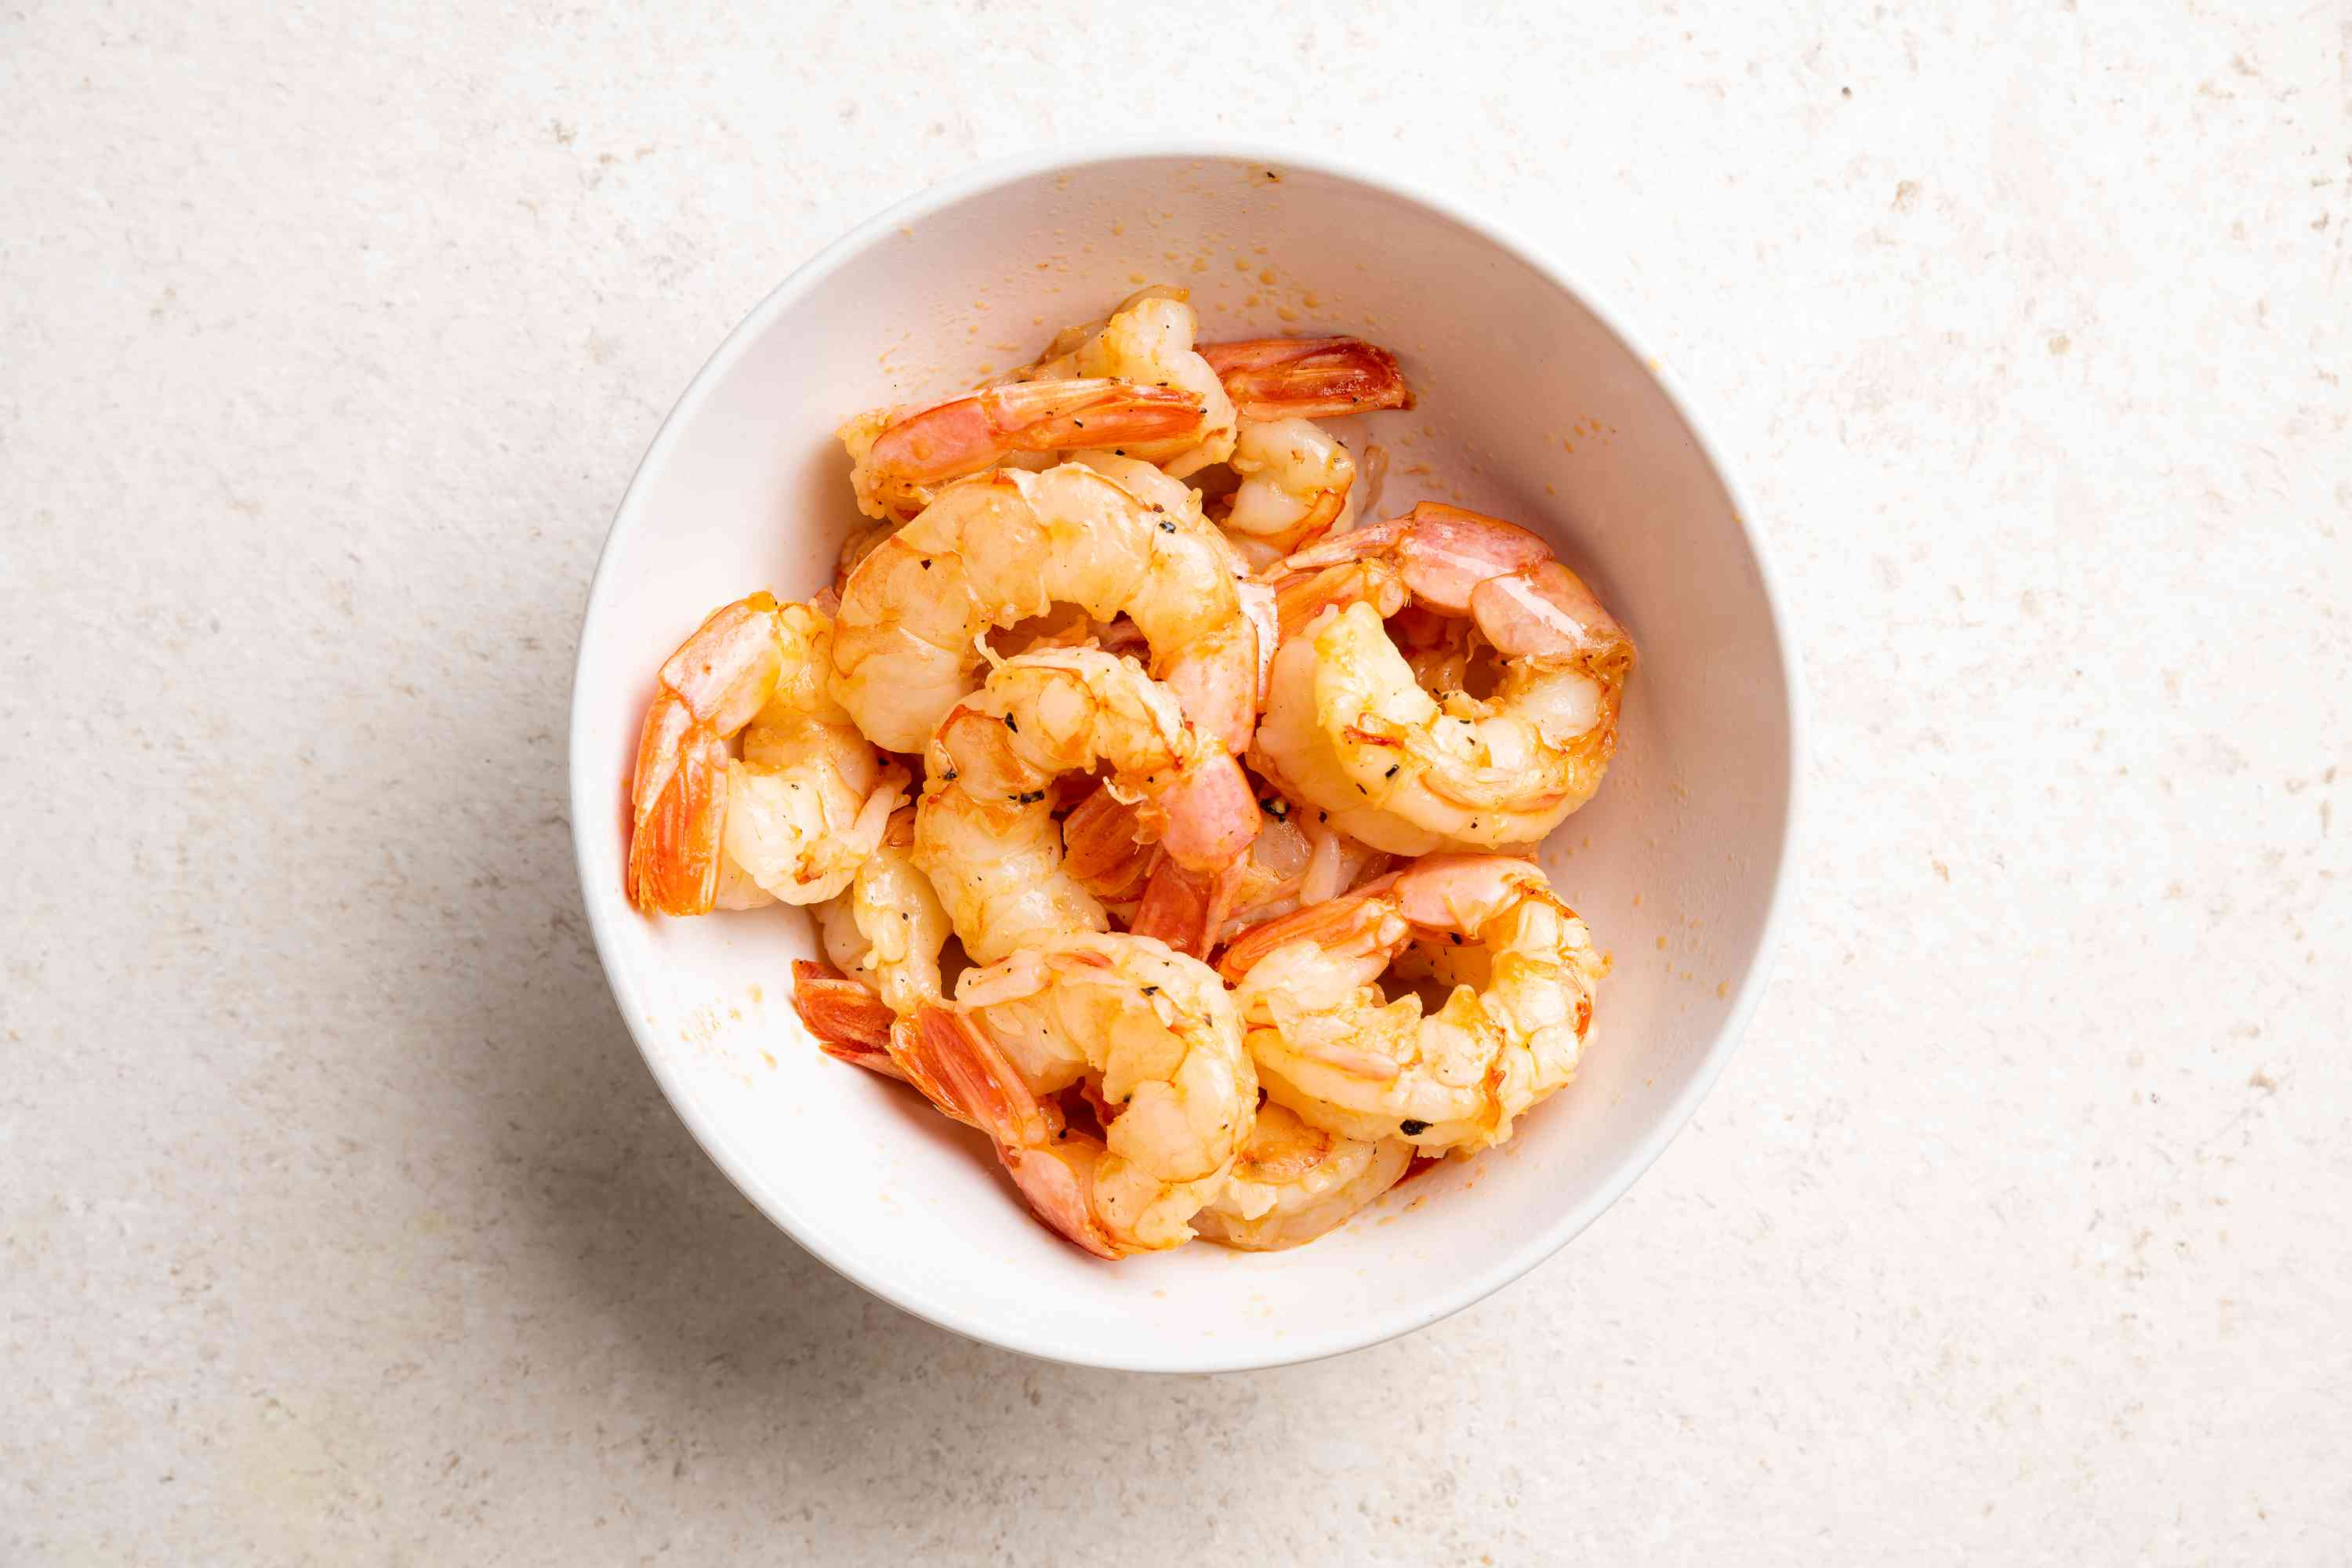 cooked shrimp in a bowl